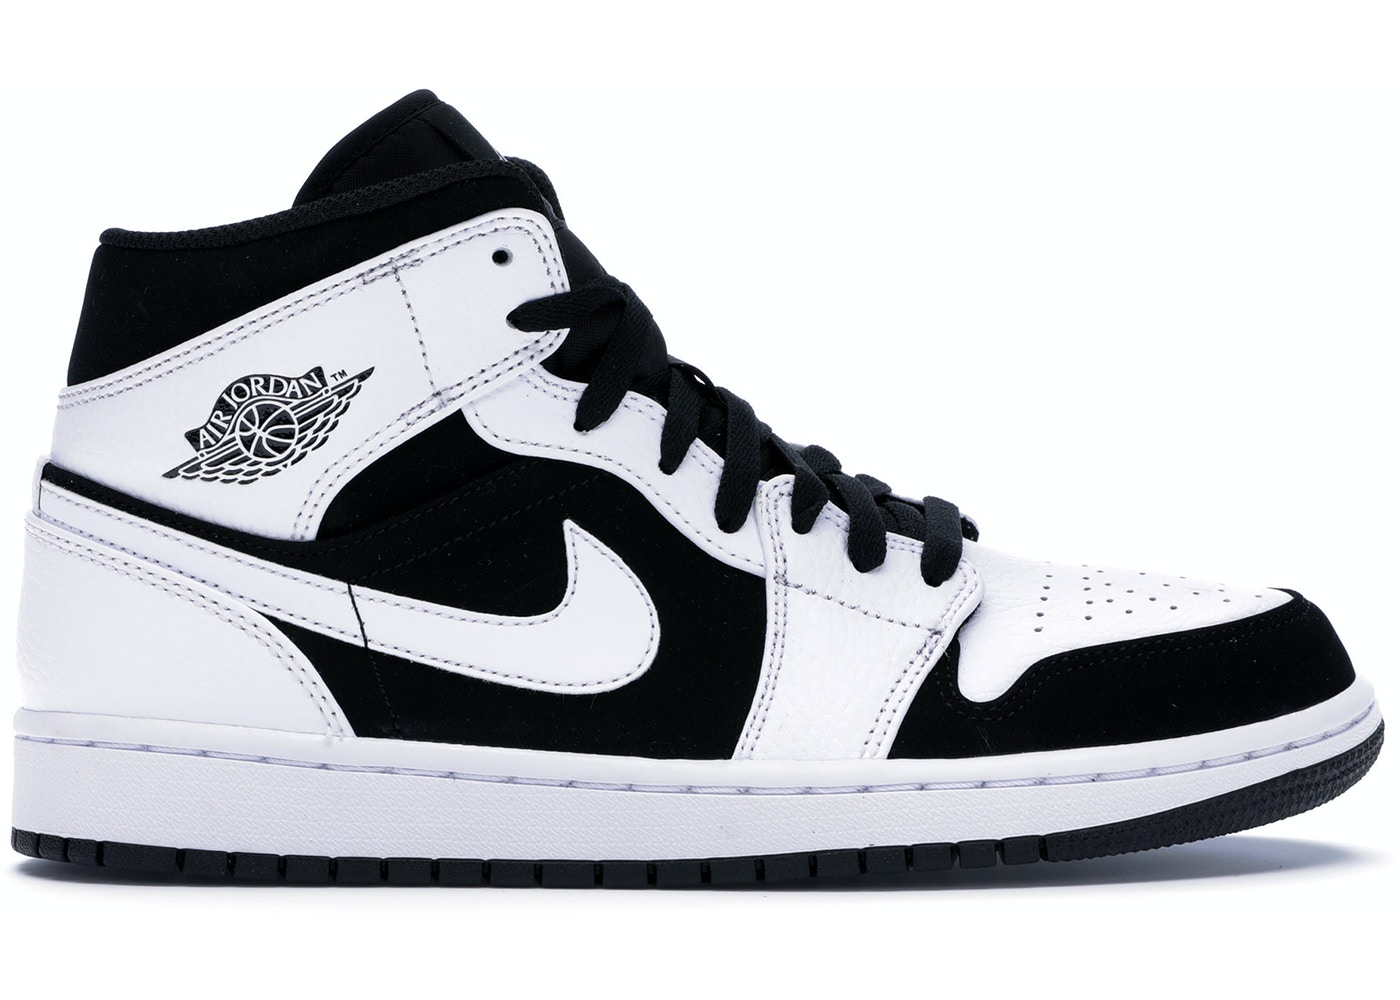 innovative design db09a 6b971 Jordan 1 Mid White Black - 554724-113